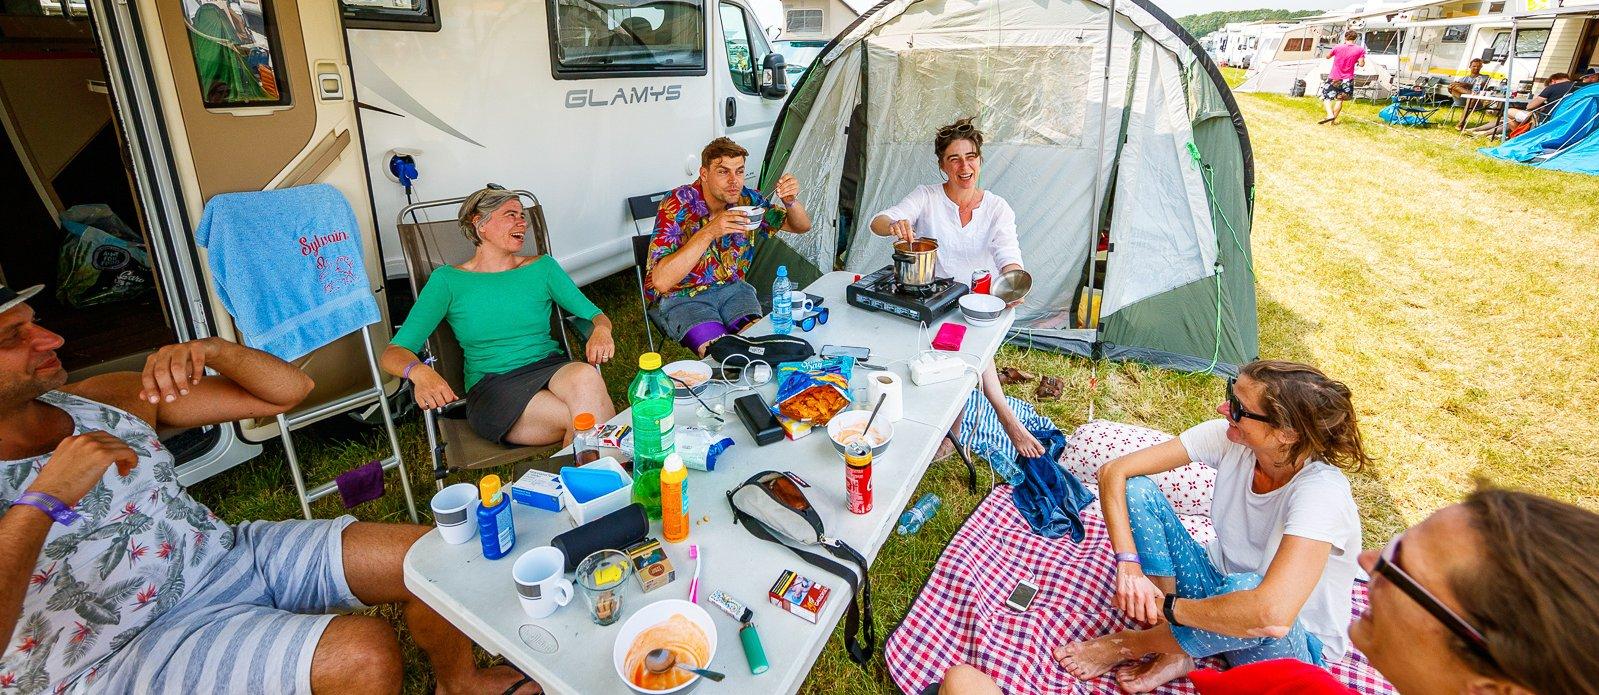 Campercamping pitch + electricity